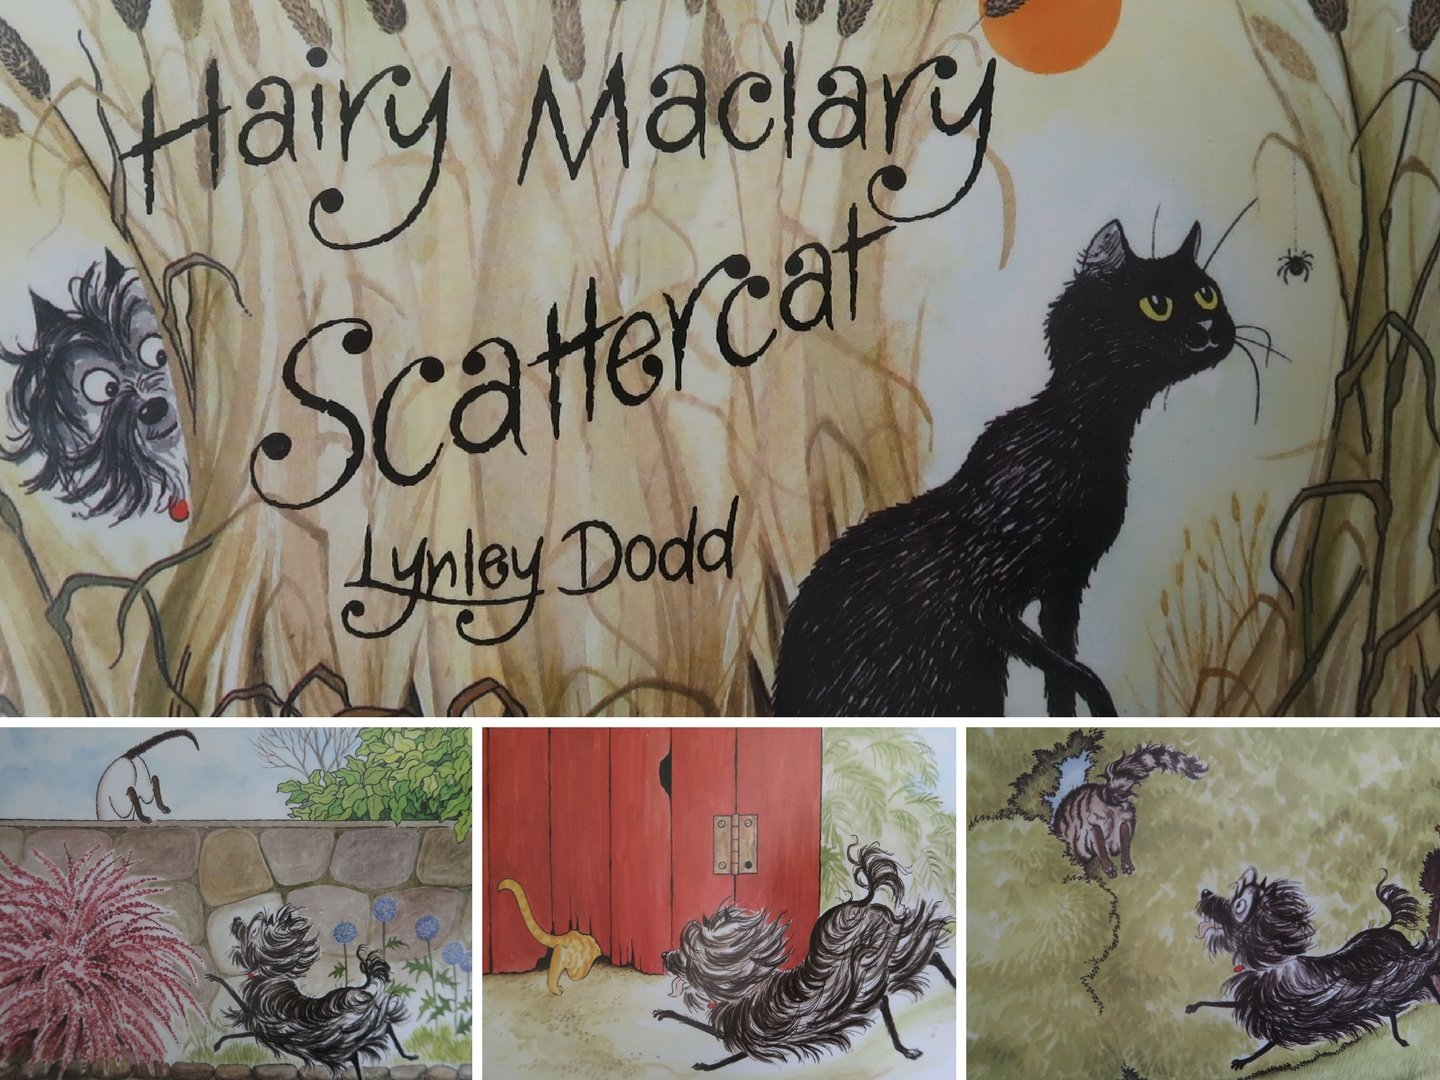 Hairy Maclary EYFS craft activity